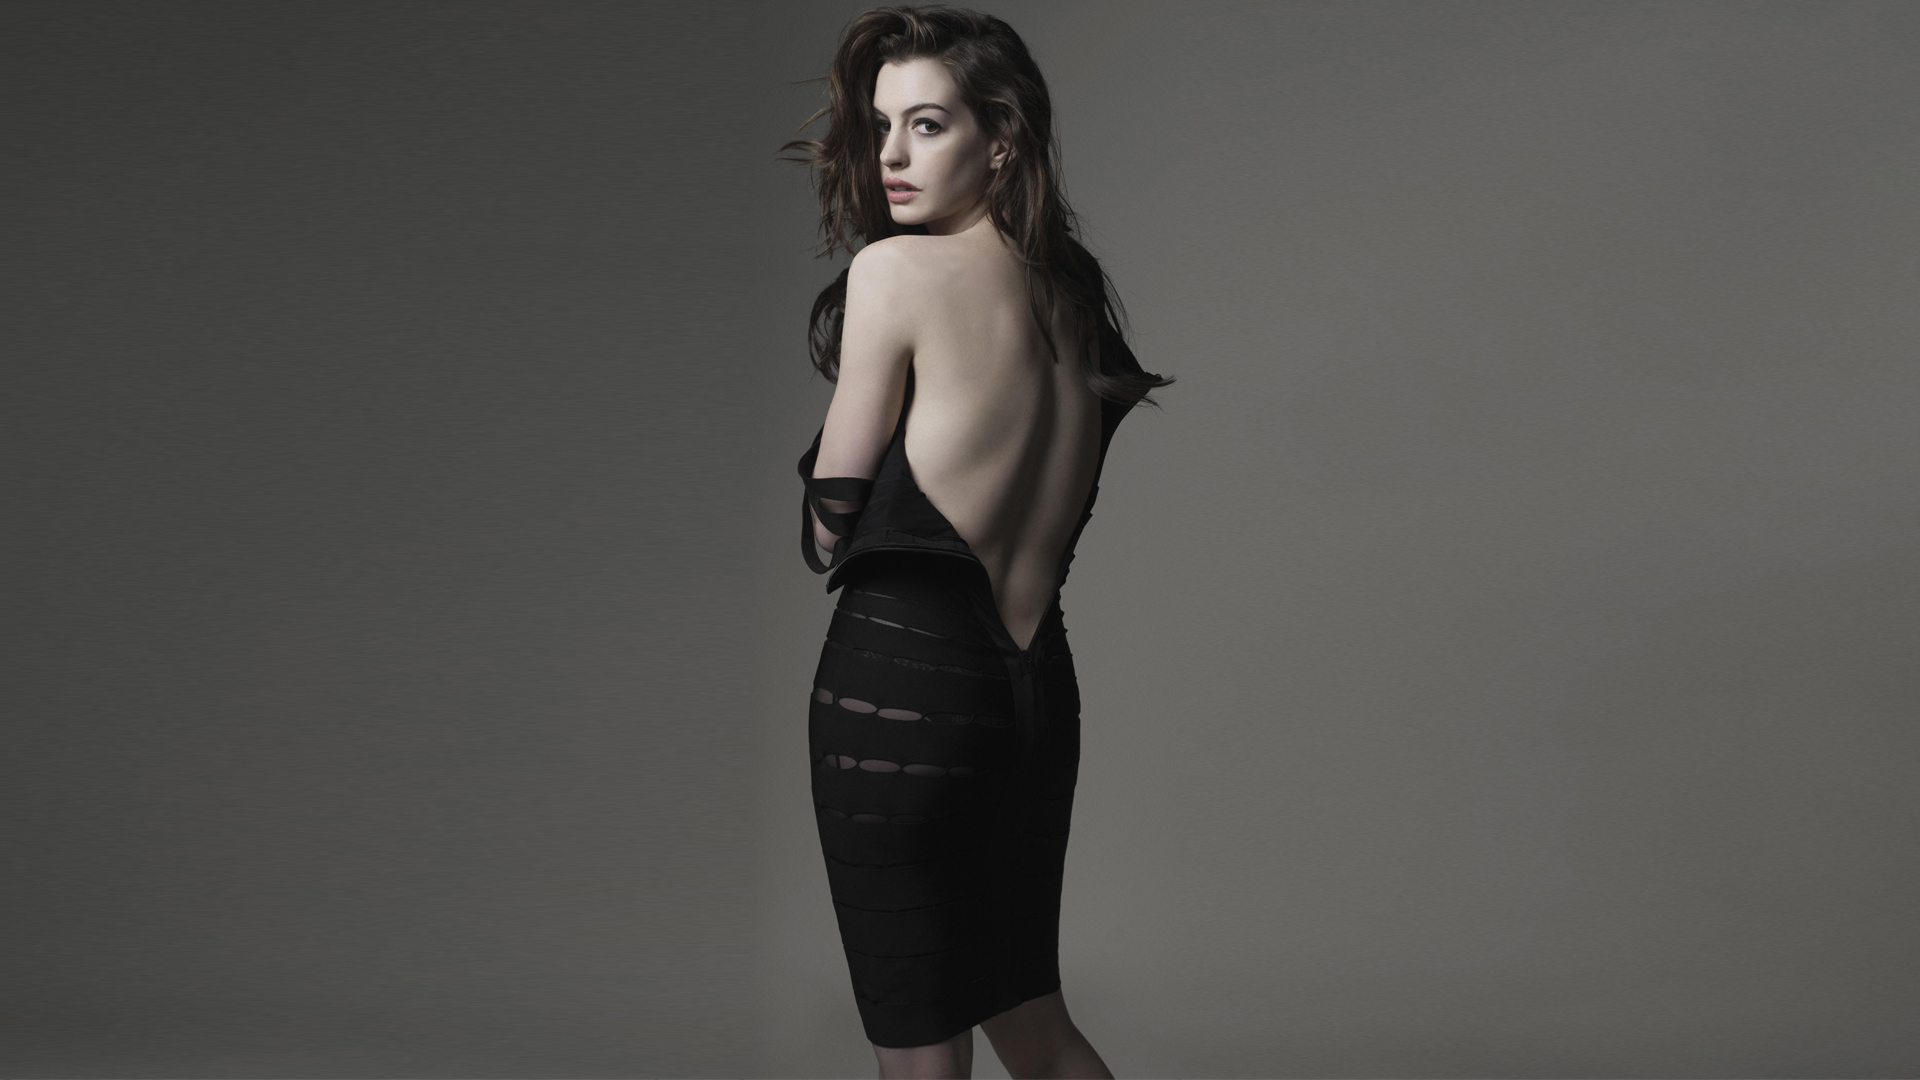 woman anne hathaway HD Wallpaper